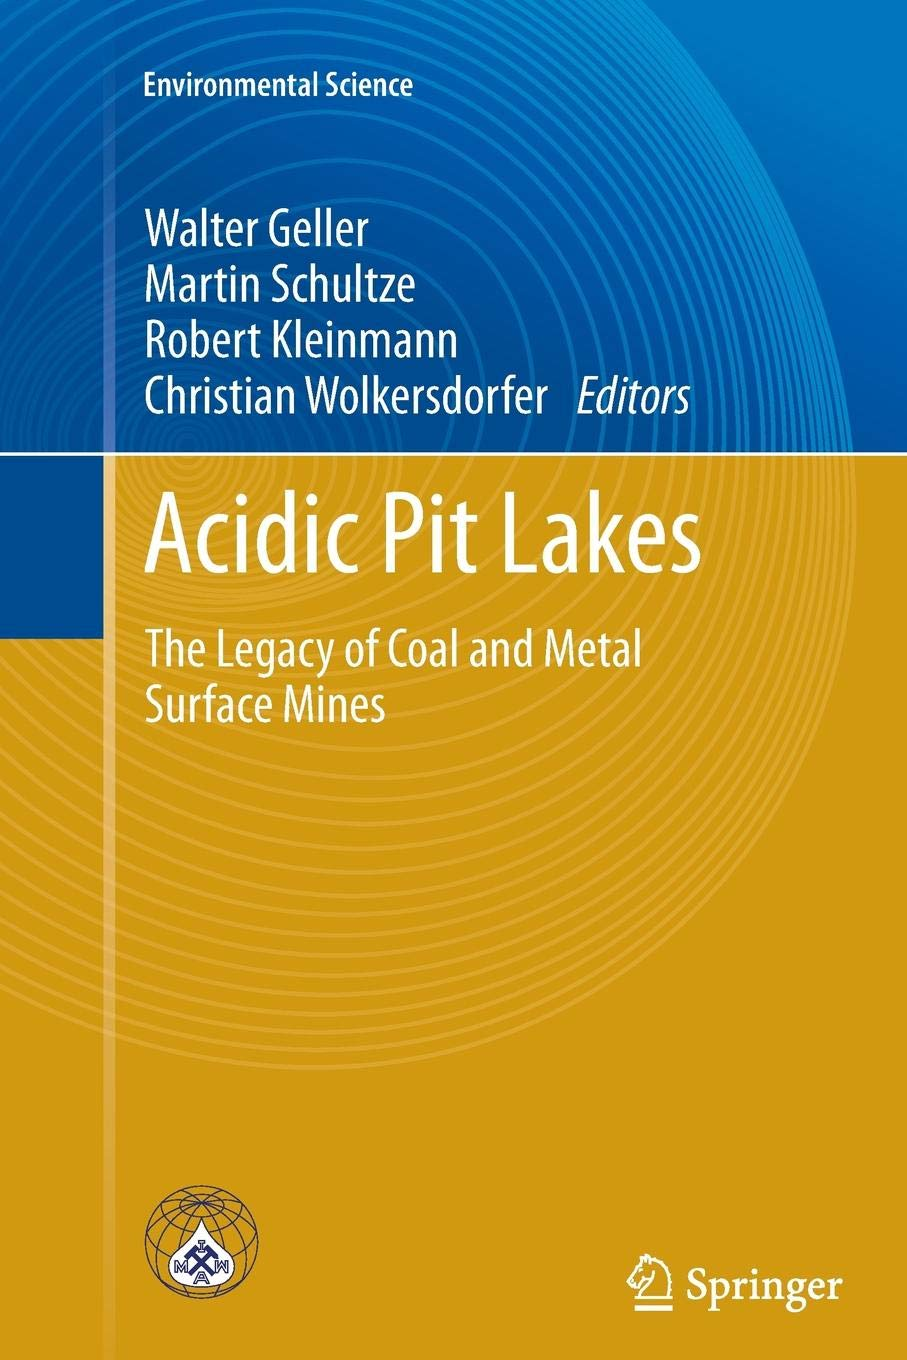 Acidic Pit Lakes: The Legacy of Coal and Metal Surface Mines